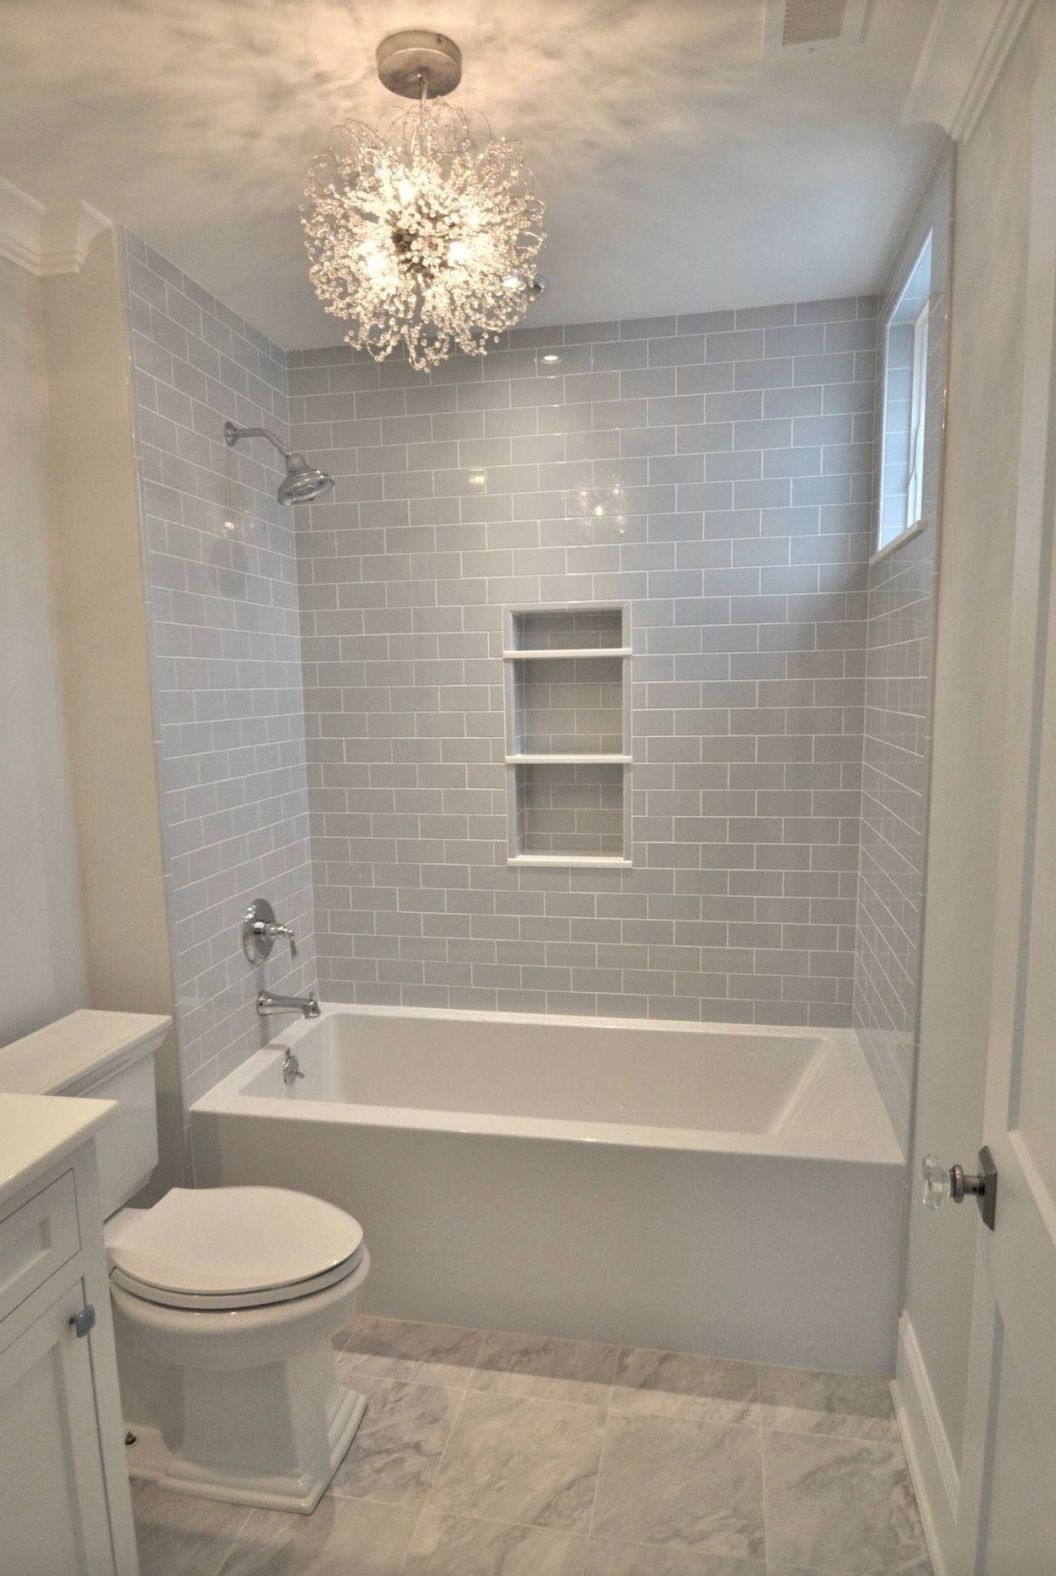 Most Amazing Small Bathroom Remodel In 2020 With Images